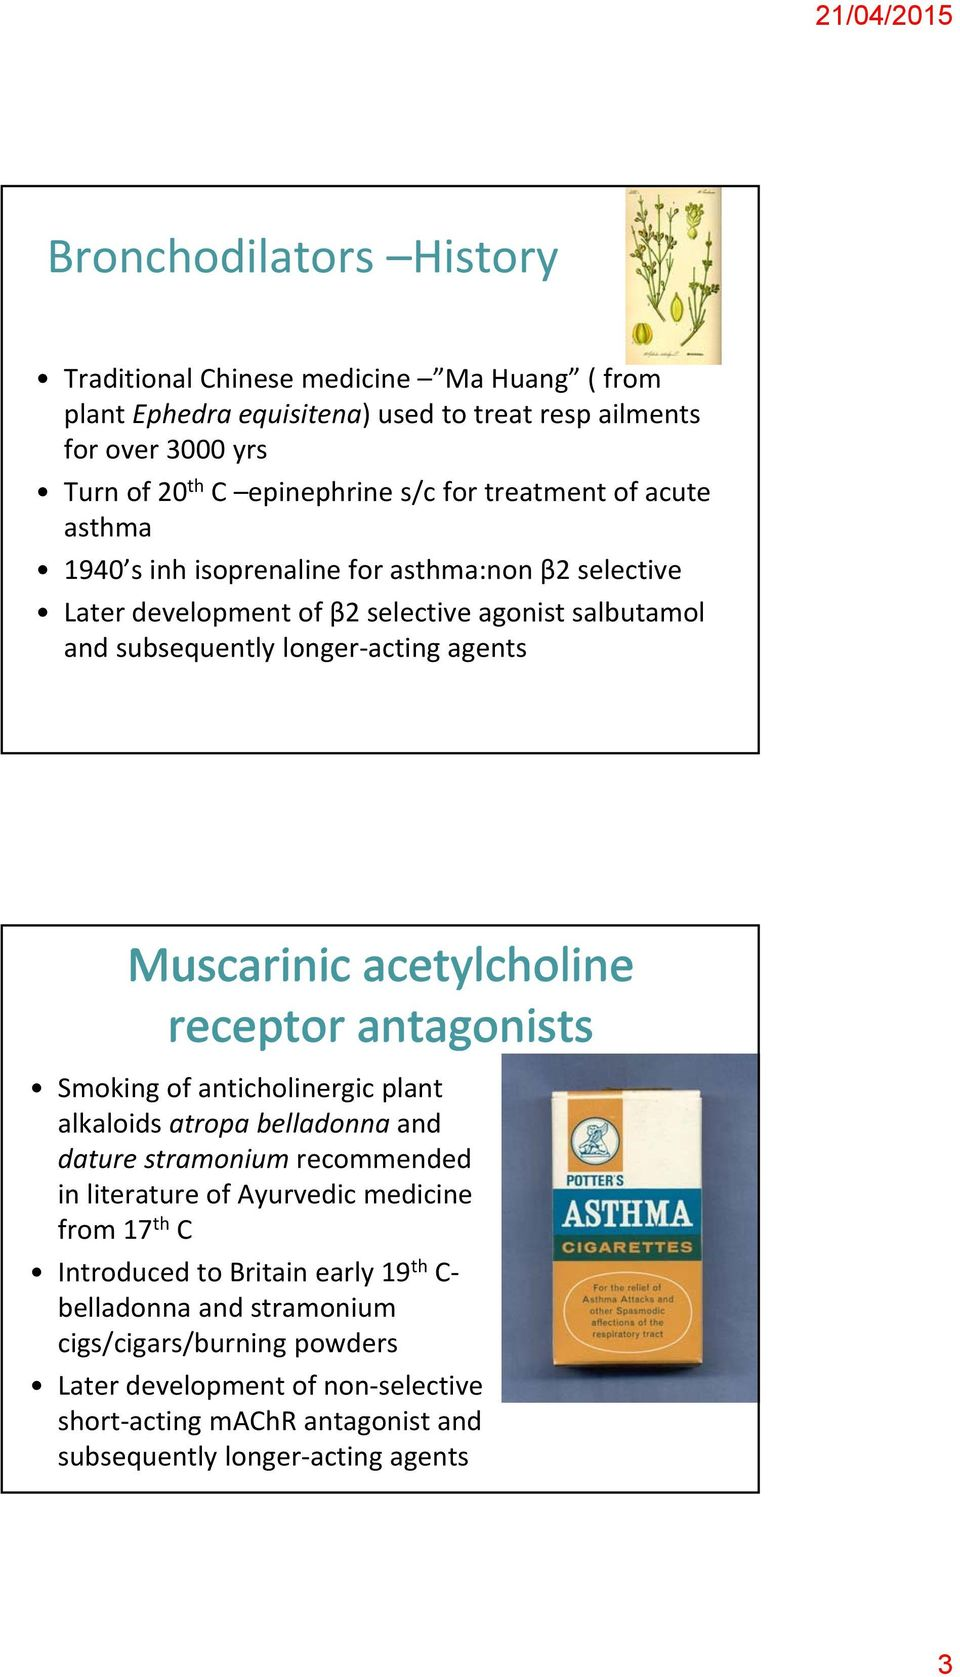 acetylcholine receptor antagonists Smoking of anticholinergic plant alkaloids atropa belladonna and dature stramonium recommended in literature of Ayurvedic medicine from 17 th C